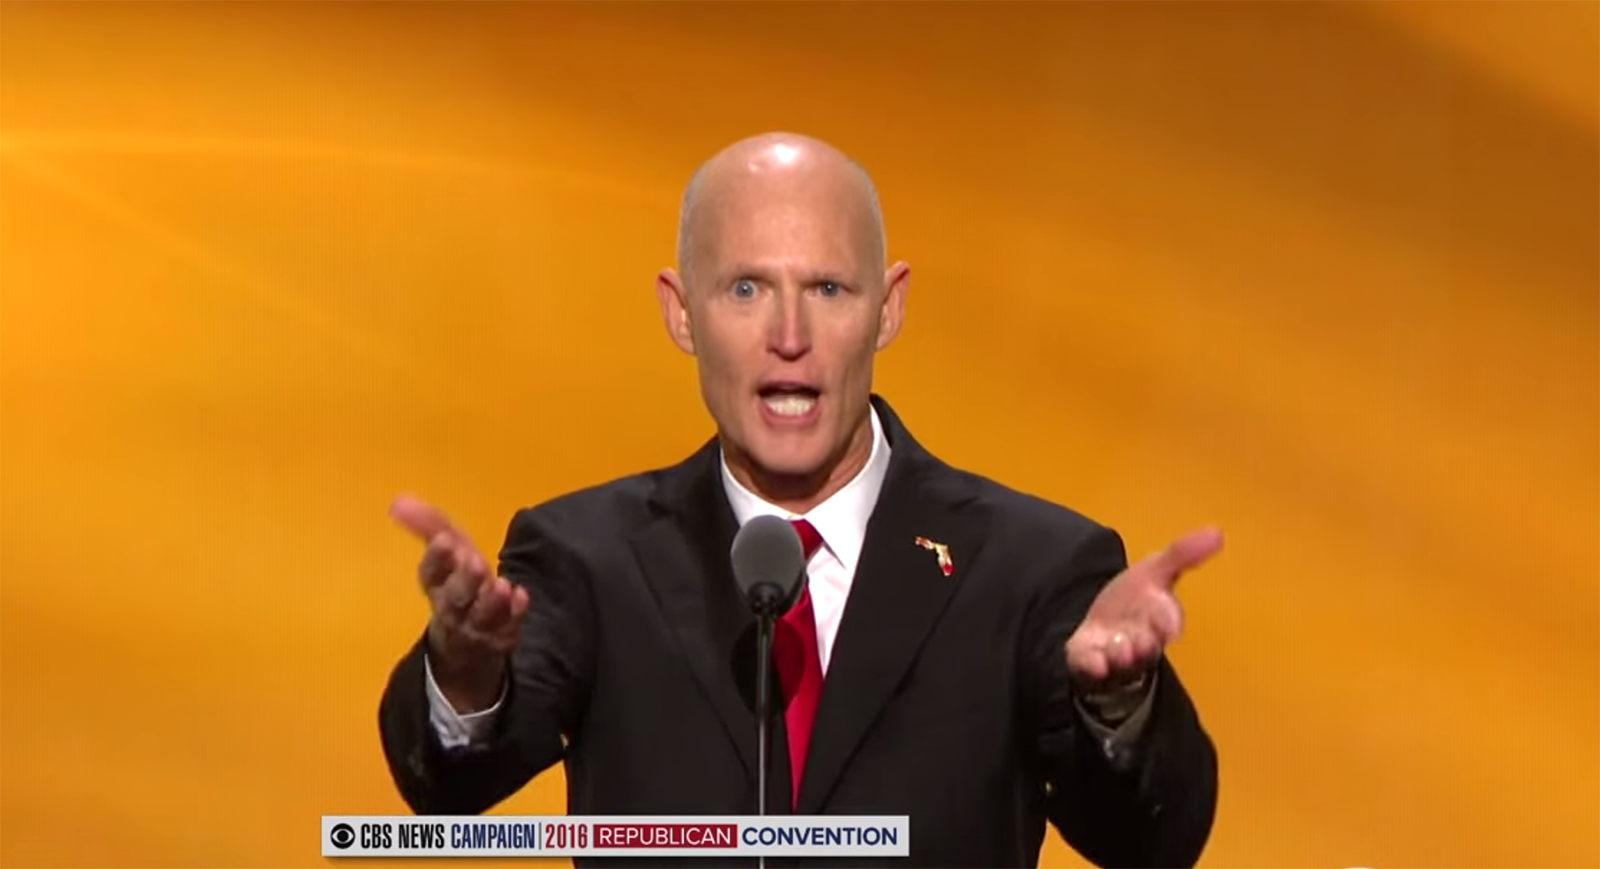 Rick Scott Discussed Orlando During His RNC Speech, But Didn't Mention The LGBT Community Or Guns